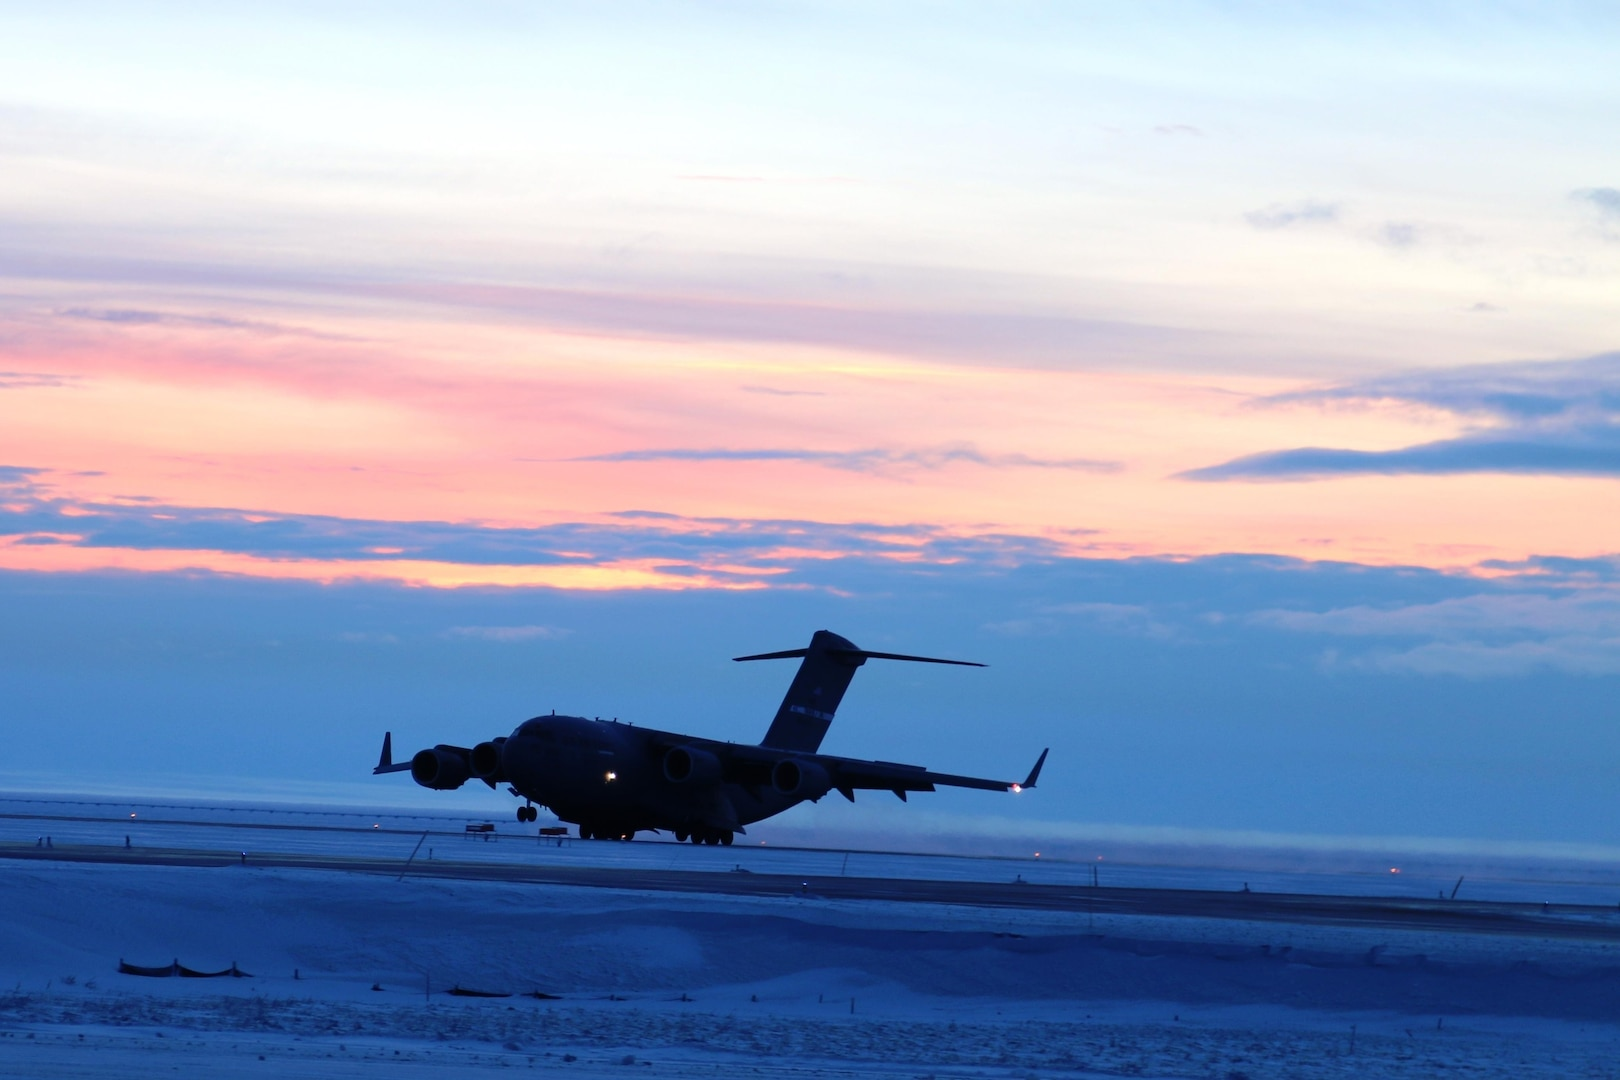 A U.S. Air Force C-17 Globemaster landing on the icy tarmac at Deadhorse, Alaska, after successfully deploying part of a Stryker platoon assigned to U.S. Army Alaska's Bravo Company, 3-21 Infantry Regiment, 1st Stryker Brigade Combat Team, Nov. 3, 2015. Operation Arctic Pegasus is U.S. Army Alaska's annual joint exercise designed to test rapid-deployment and readiness in the Arctic. The exercise marks the first time Strykers have deployed above the Arctic Circle. The 1st Stryker Brigade Combat Team is the Army's northernmost unit and has the unique capability to deploy and operate in extreme cold regions. (Photo by Capt. Richard Packer, U.S. Army Alaska Public Affairs)